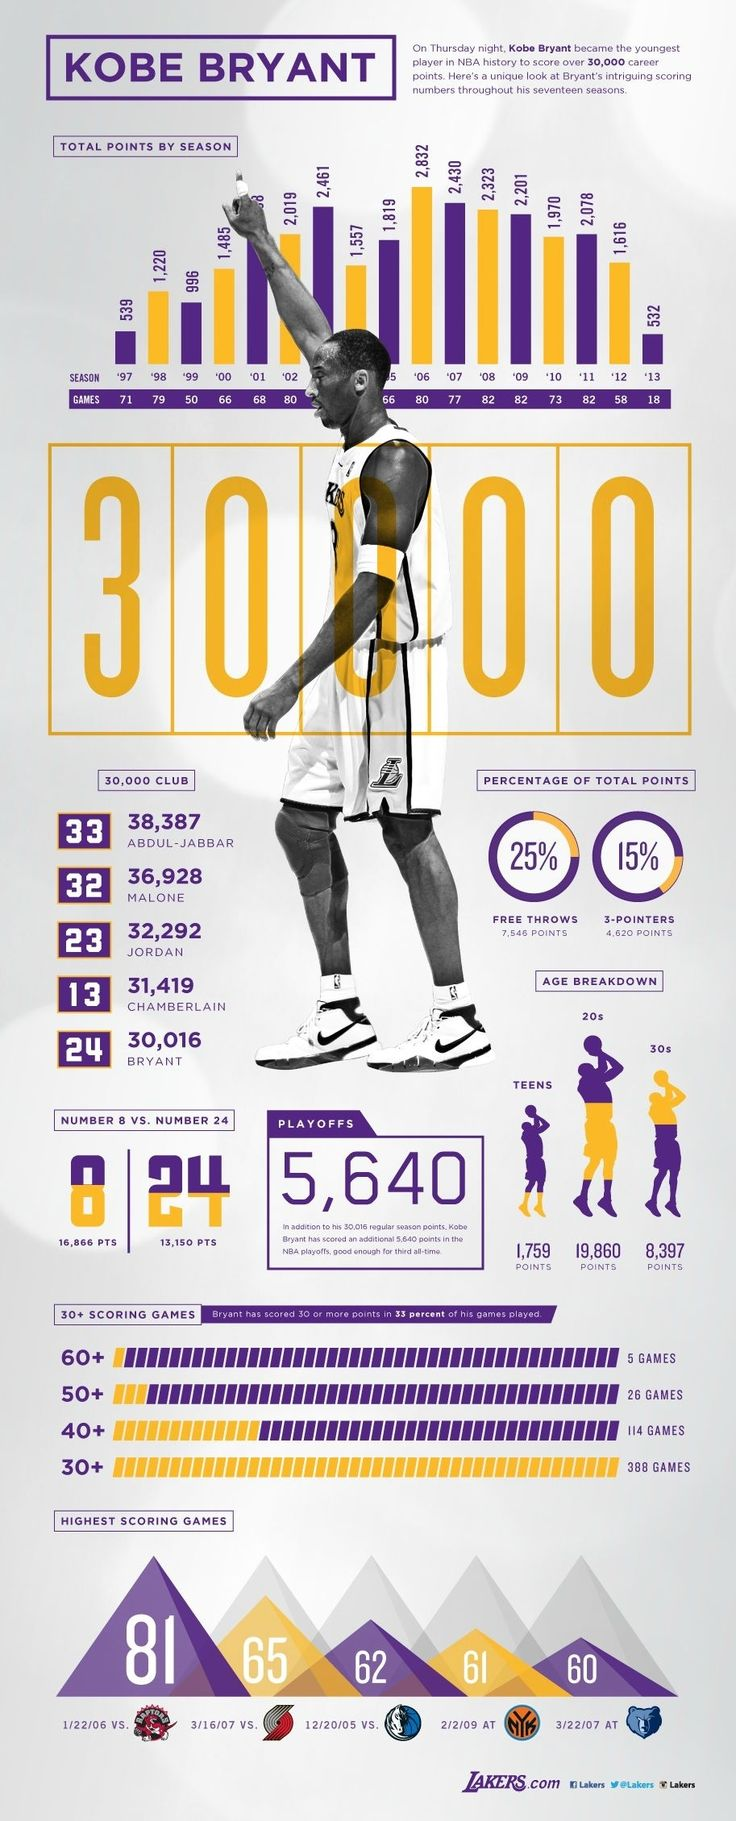 Awesome Infographic Breaks Down Kobe Bryant's 30,000 Career Points #Lakers